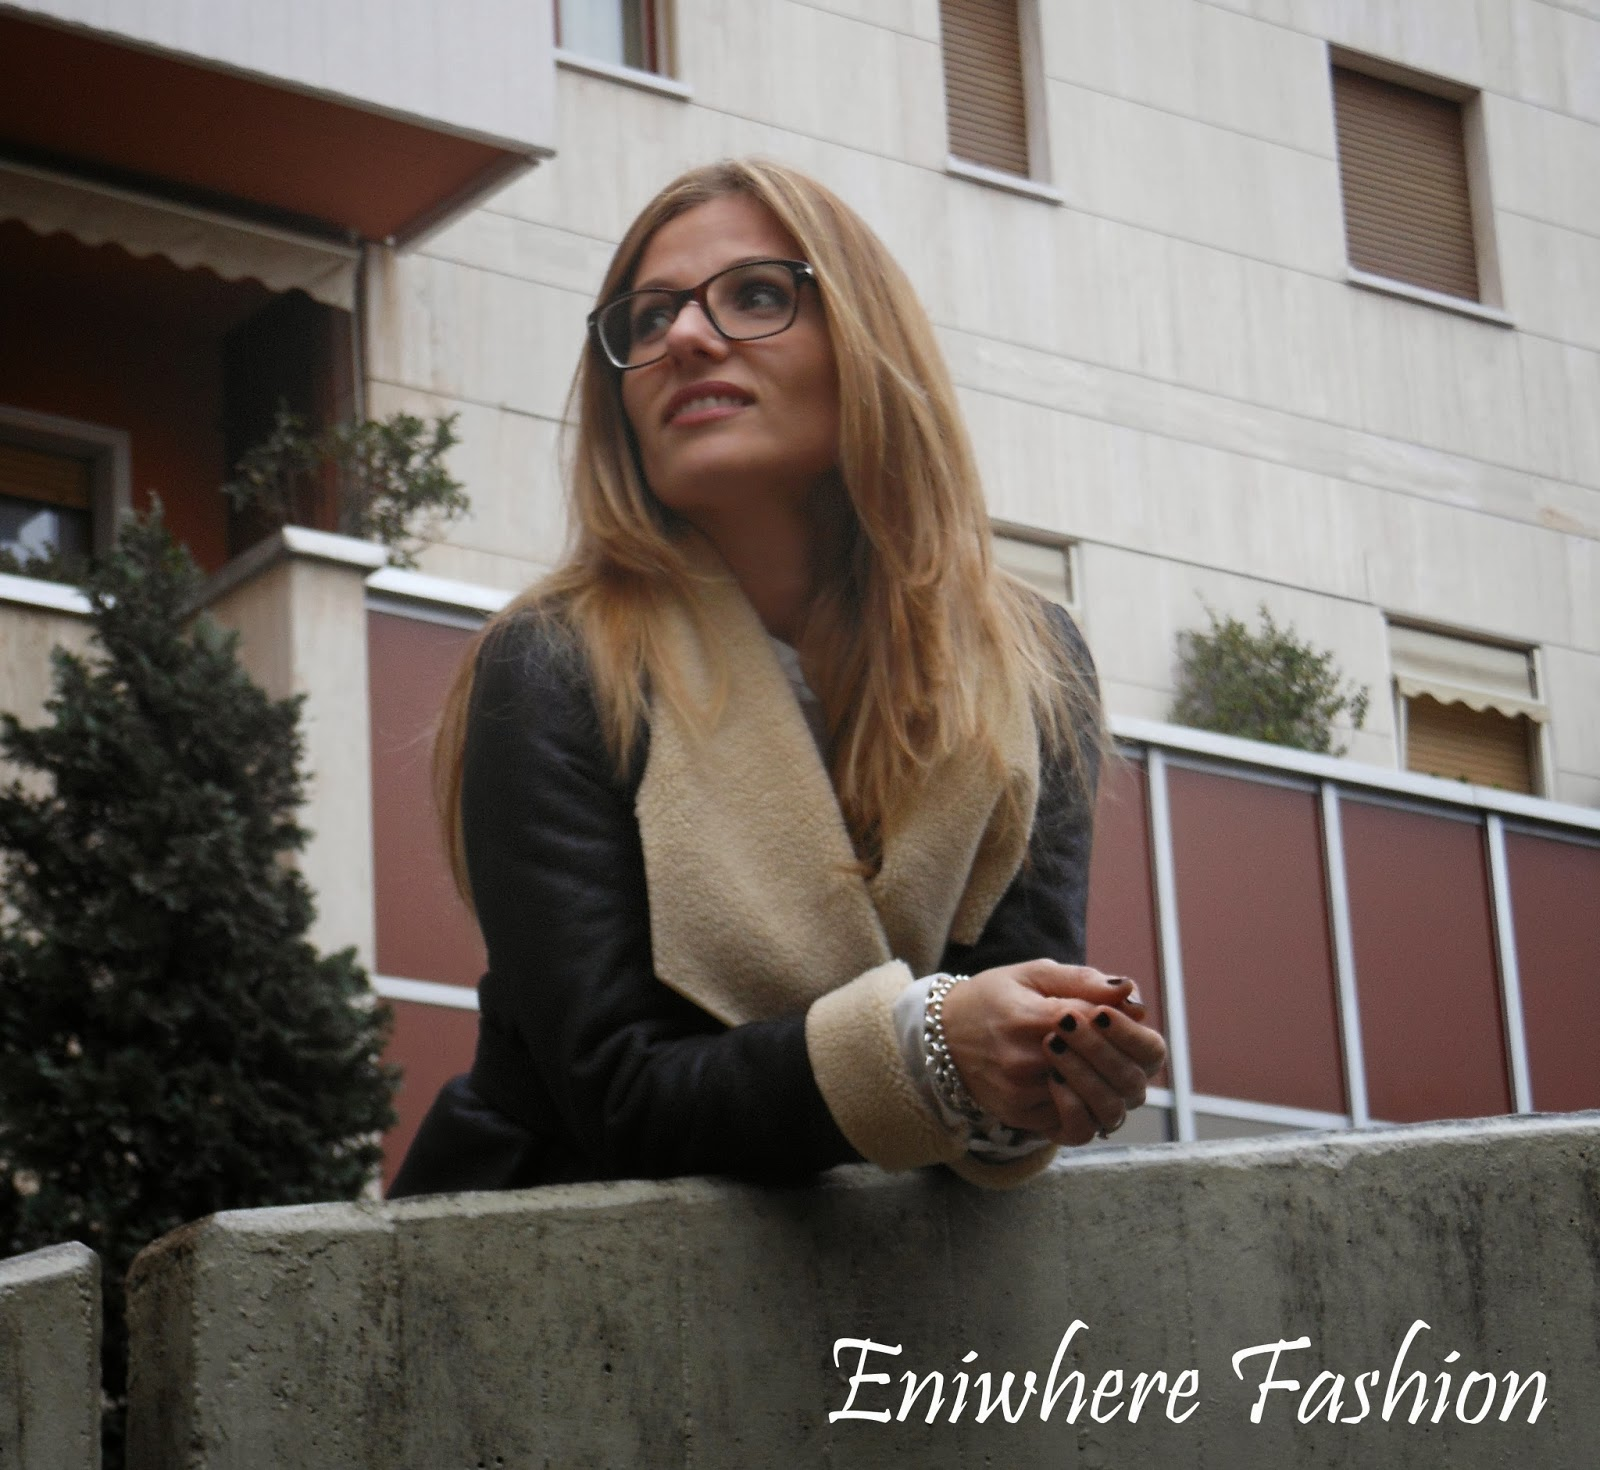 Eniwhere Fashion montone tacco